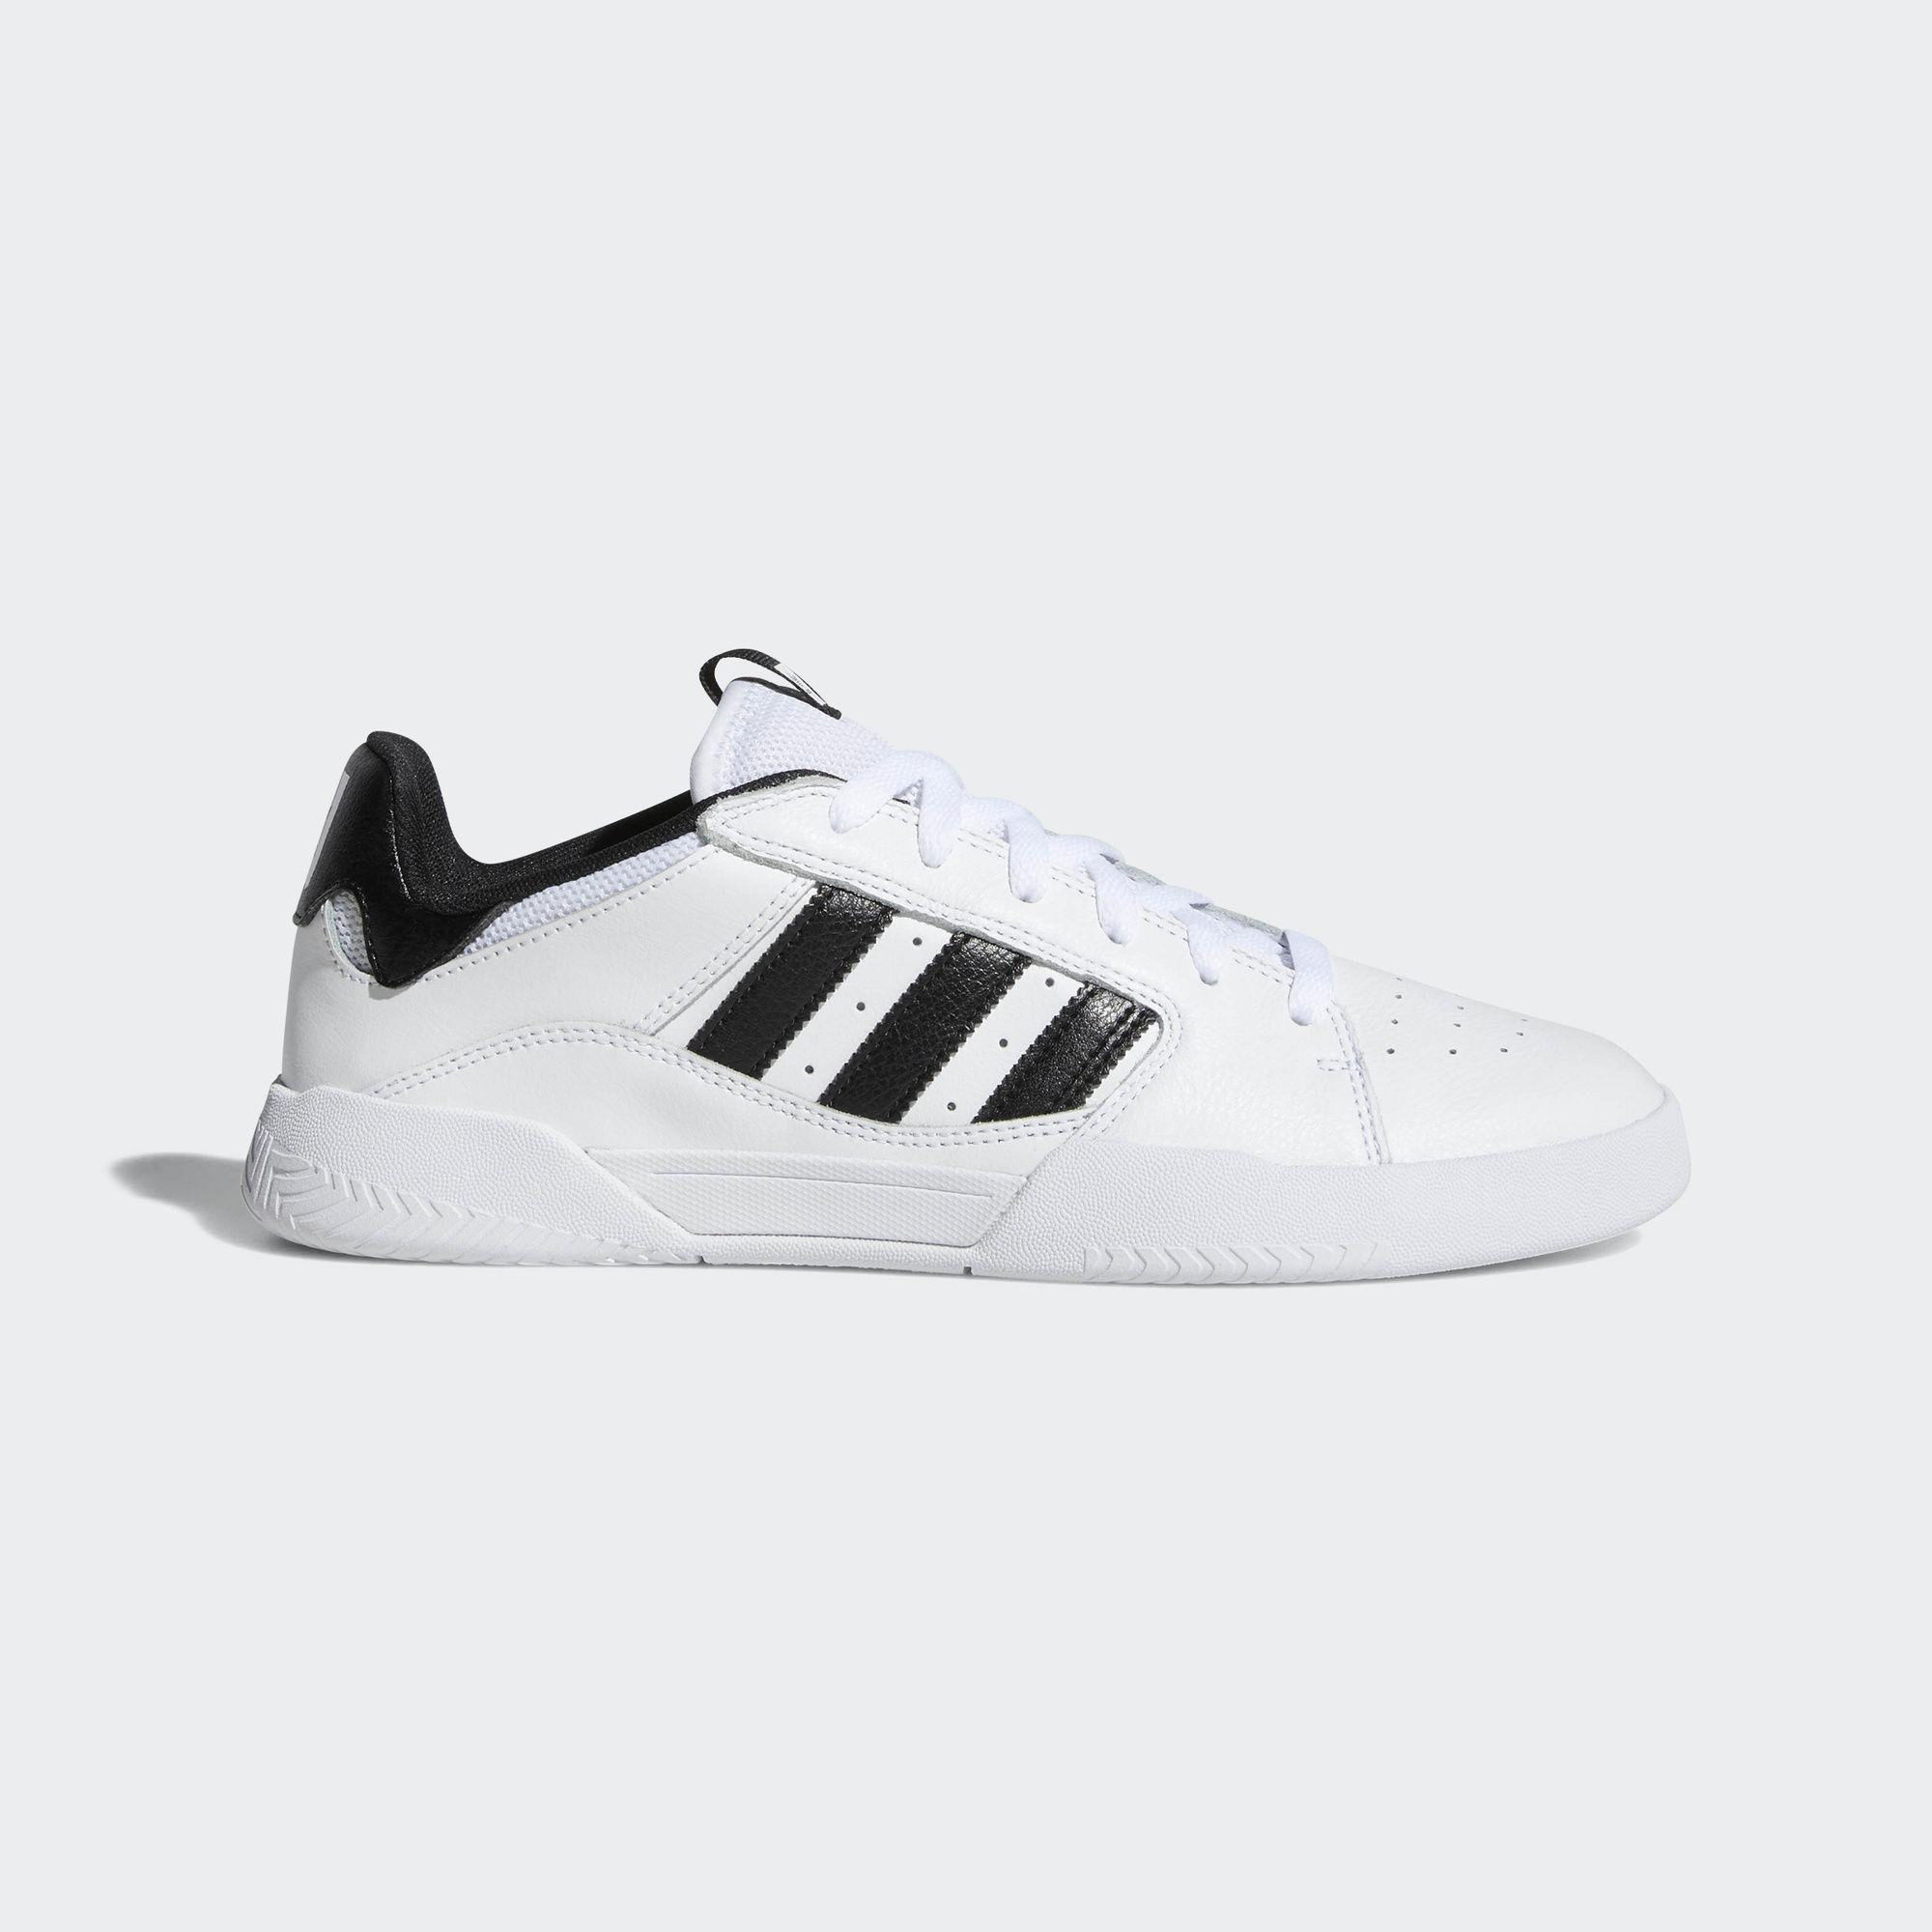 adidas Vrx Cup Low Shoes in White for Men - Lyst 789aa1567